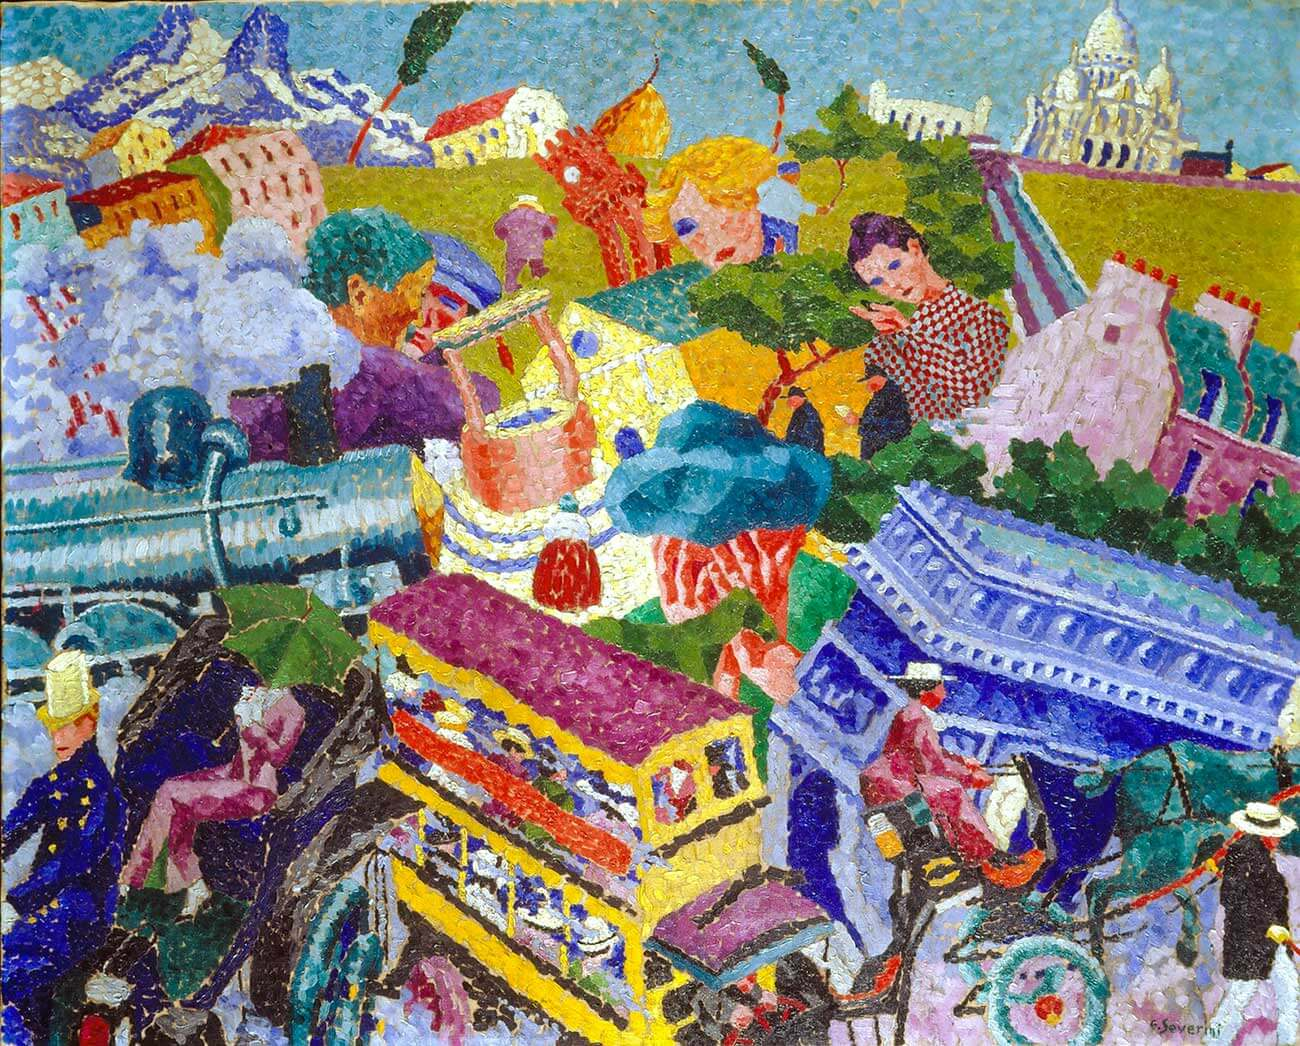 gino severini from cortona and the futurism